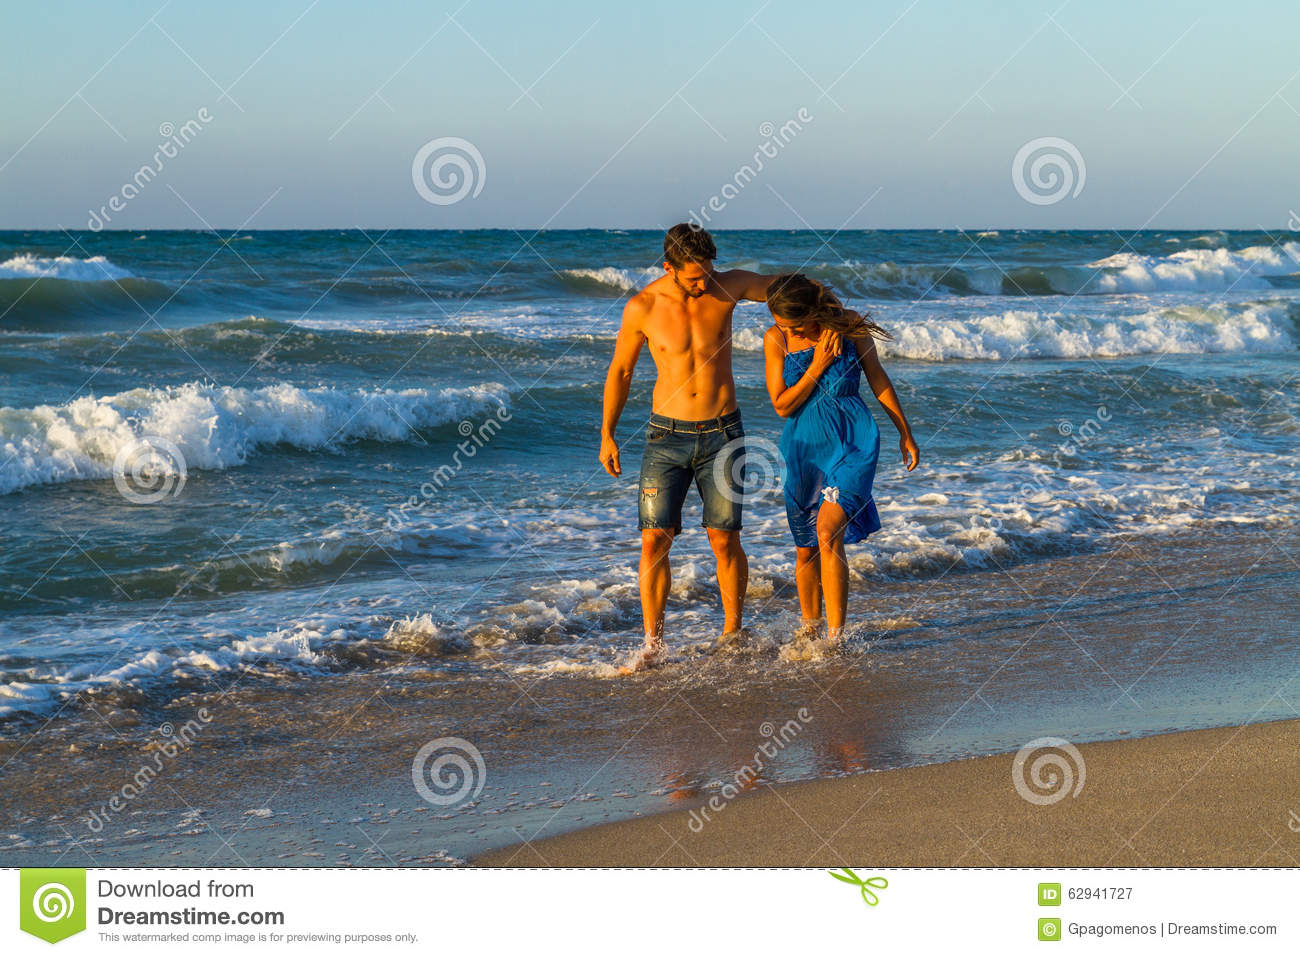 Happy young couple in jean shorts and a blue dress, having fun walking  along a sandy beach at dusk, getting wet, teasing and embracing one another.